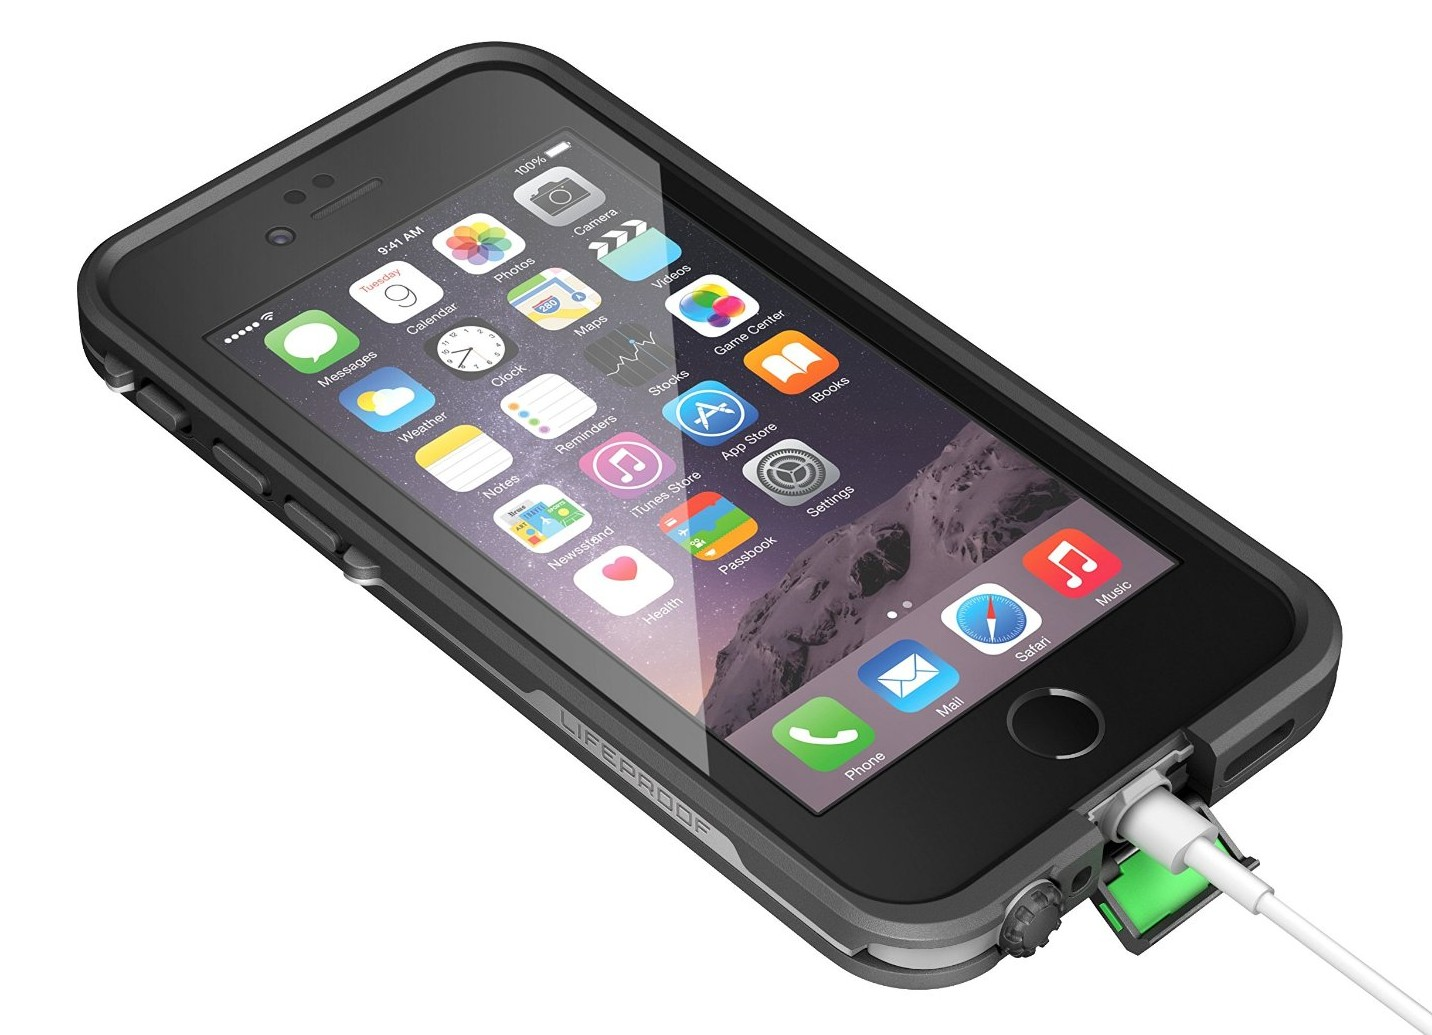 lifeproof case iphone 6 frē series from lifeproof is a waterproof iphone 6 15620